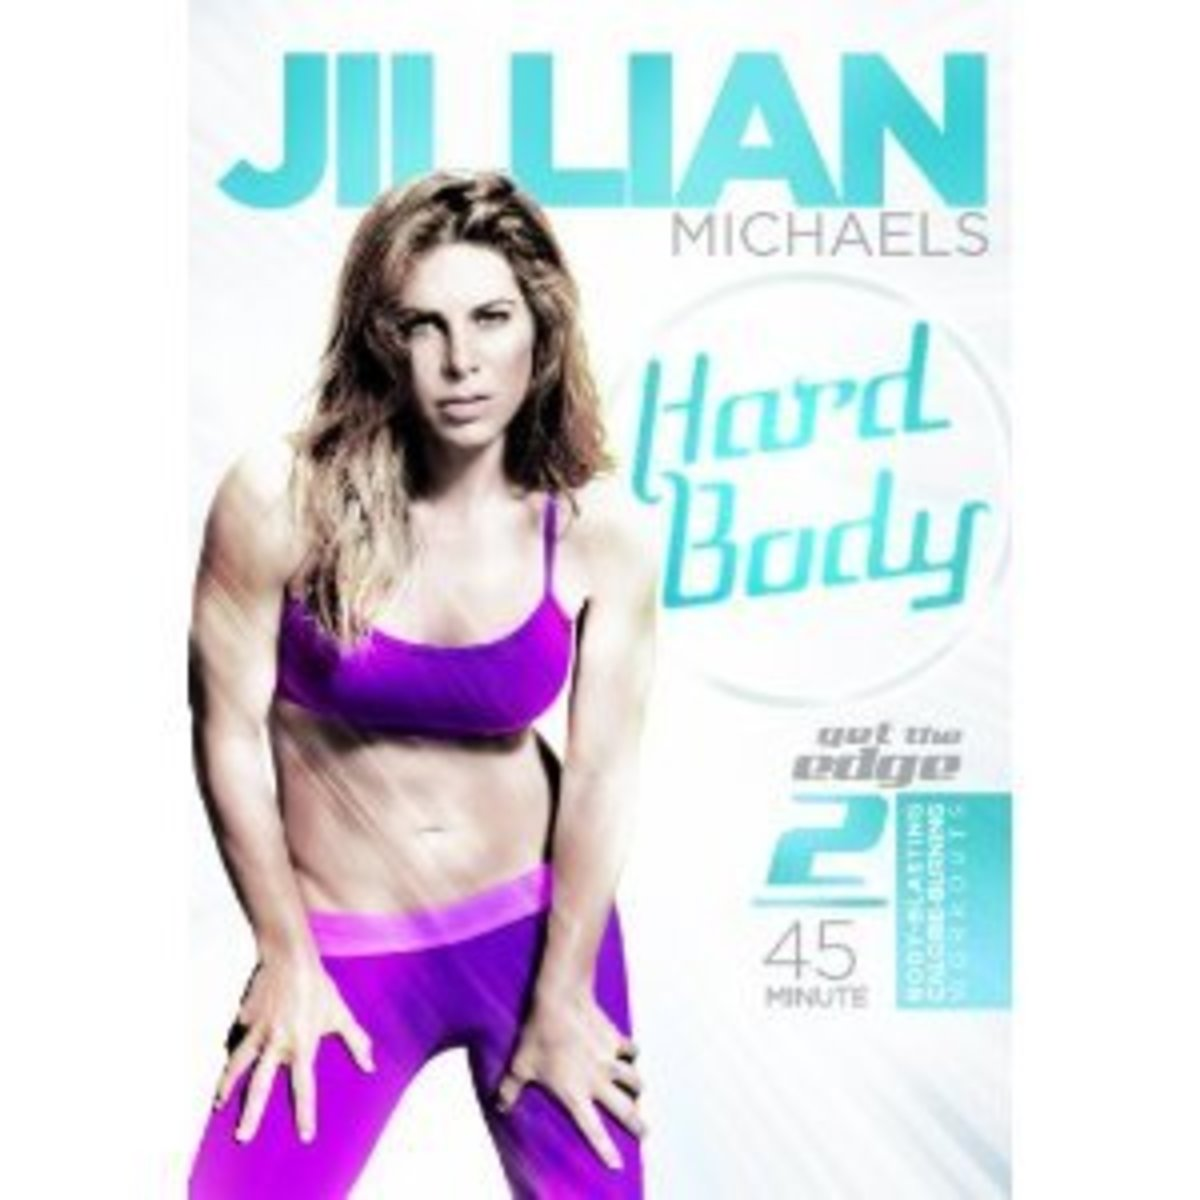 Review of Jillian Michaels' Hard Body DVD